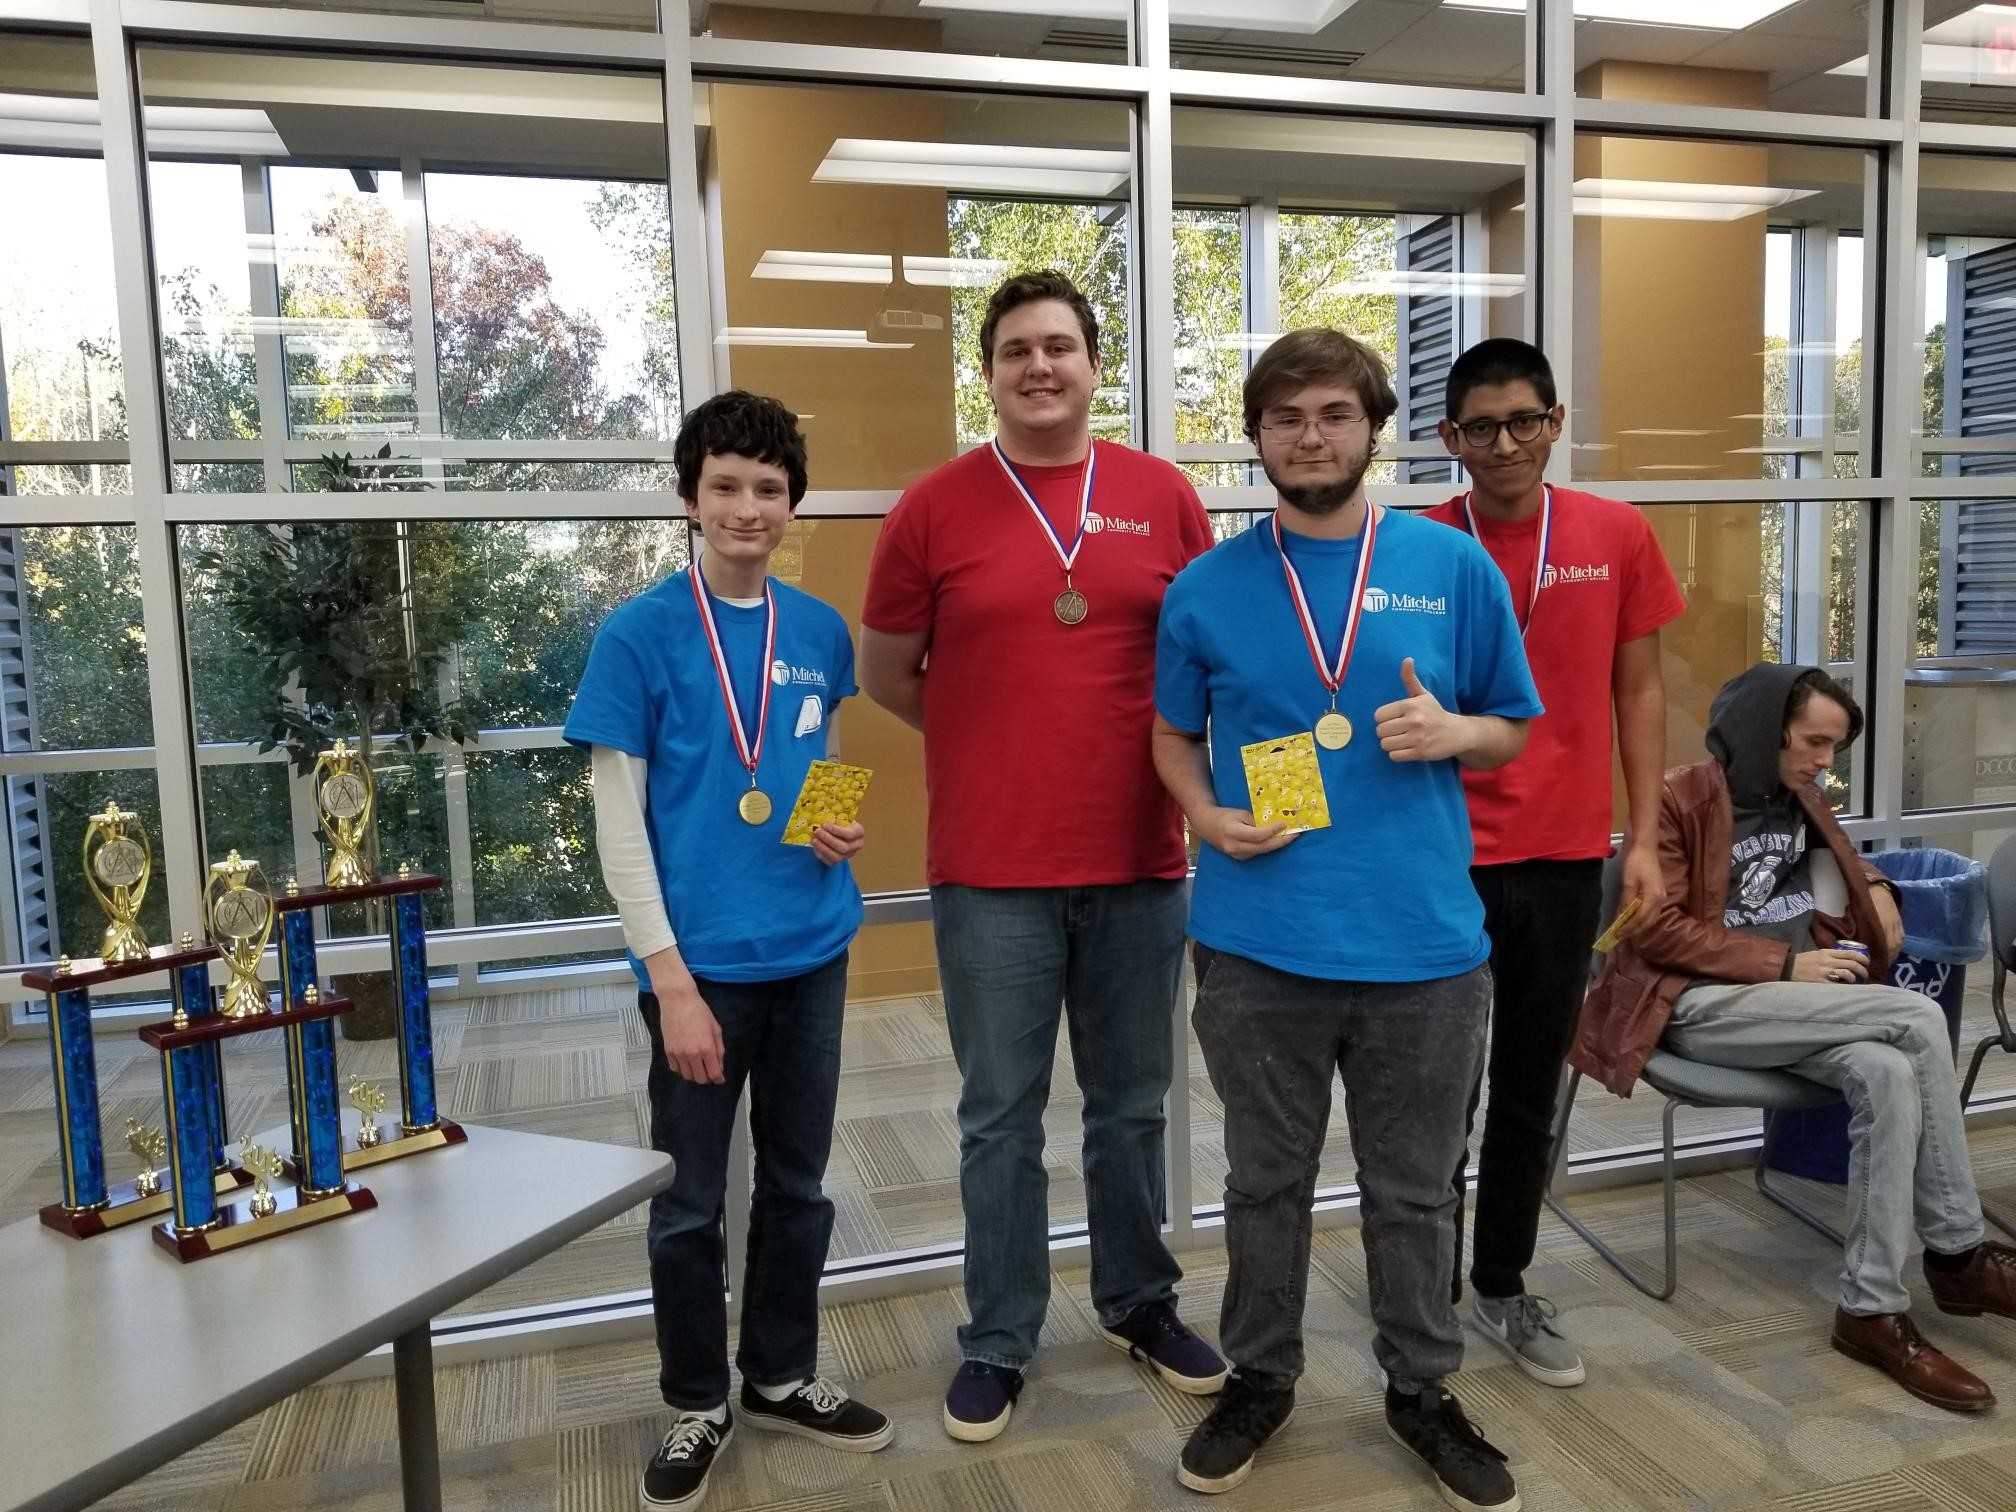 (L-R) Mitchell Math Club competitors Erick Boniface, Lee Cline, Michael Bovenzi and Christian Campos Ruiz